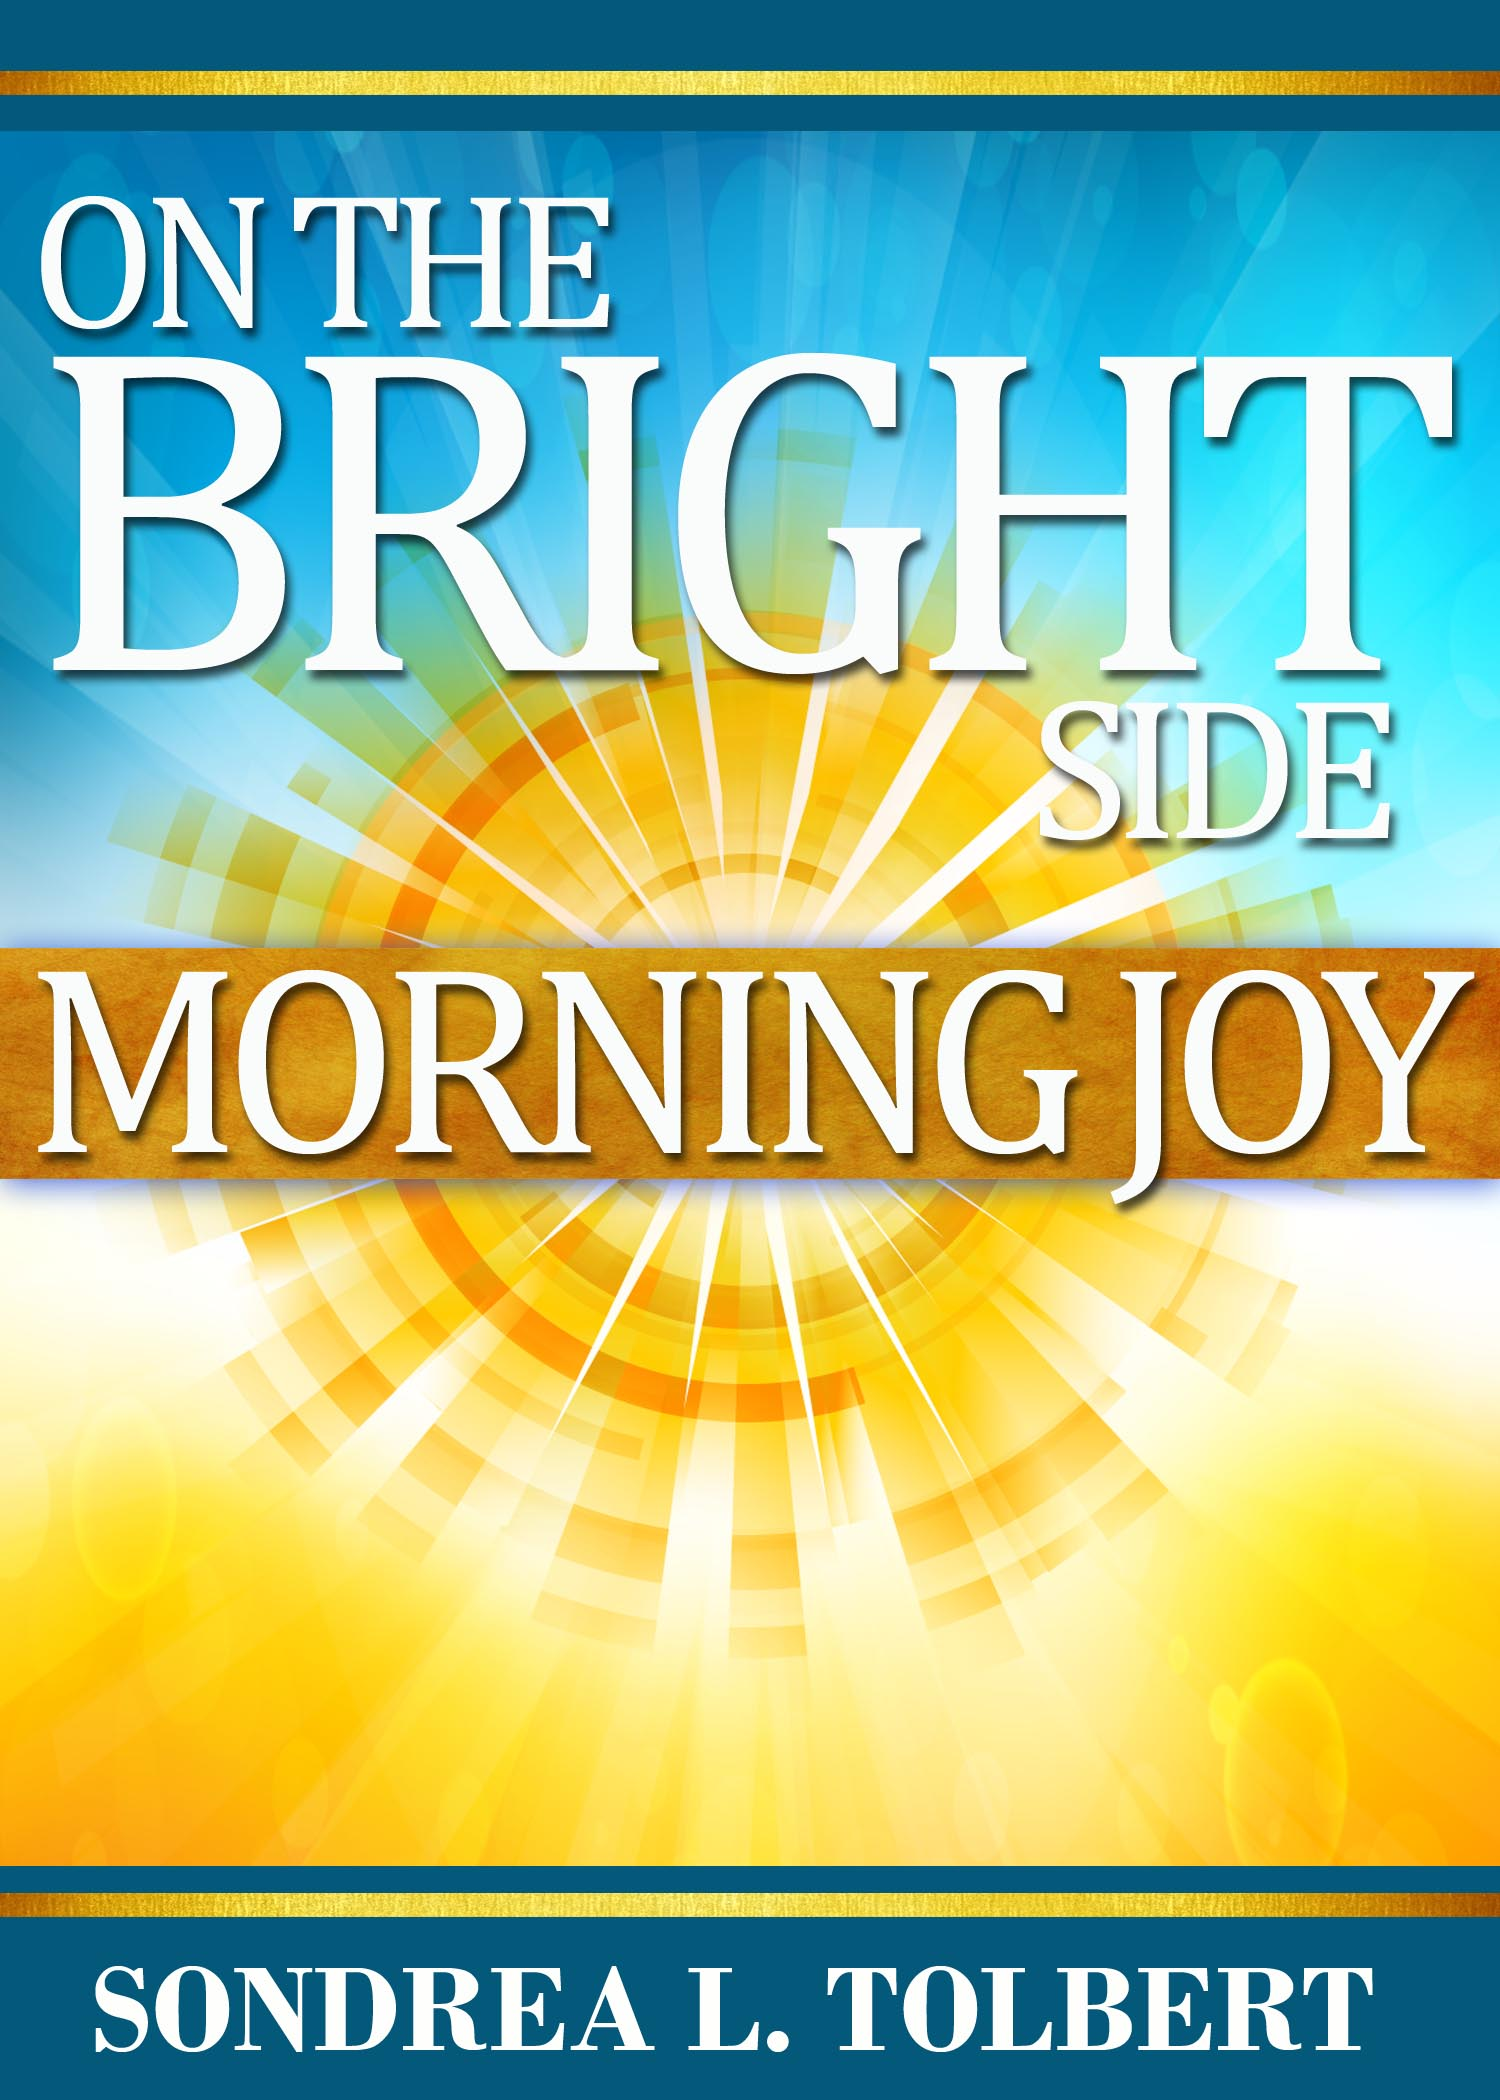 On The Bright Side Morning Joy Front Cover